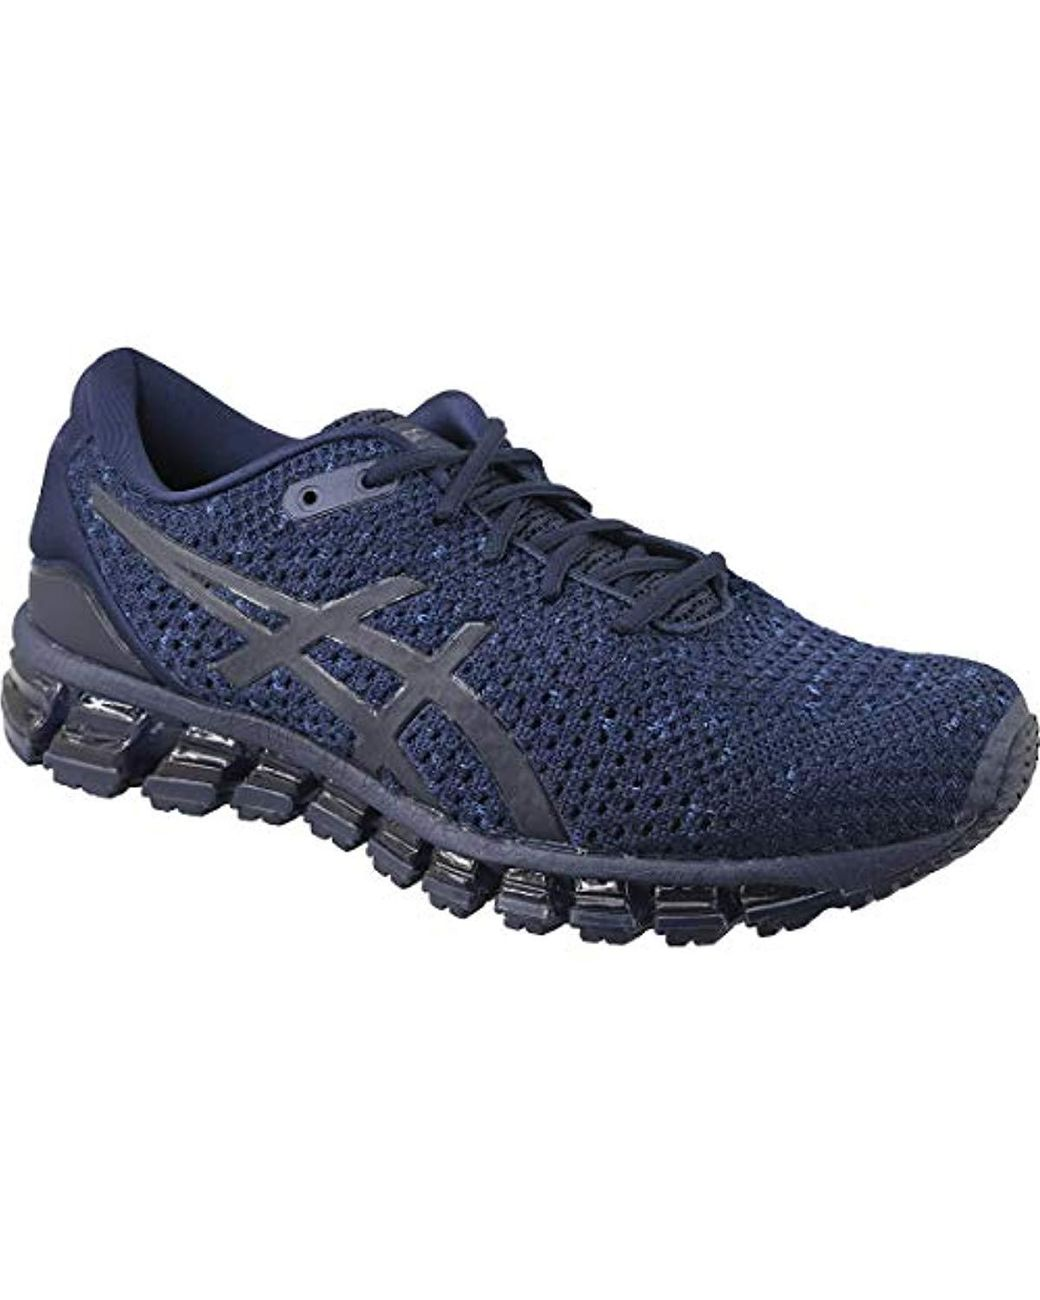 online store 6bf4b 437d0 Asics Gel-quantum 360 Knit 2 T840q-5842 Competition Running ...